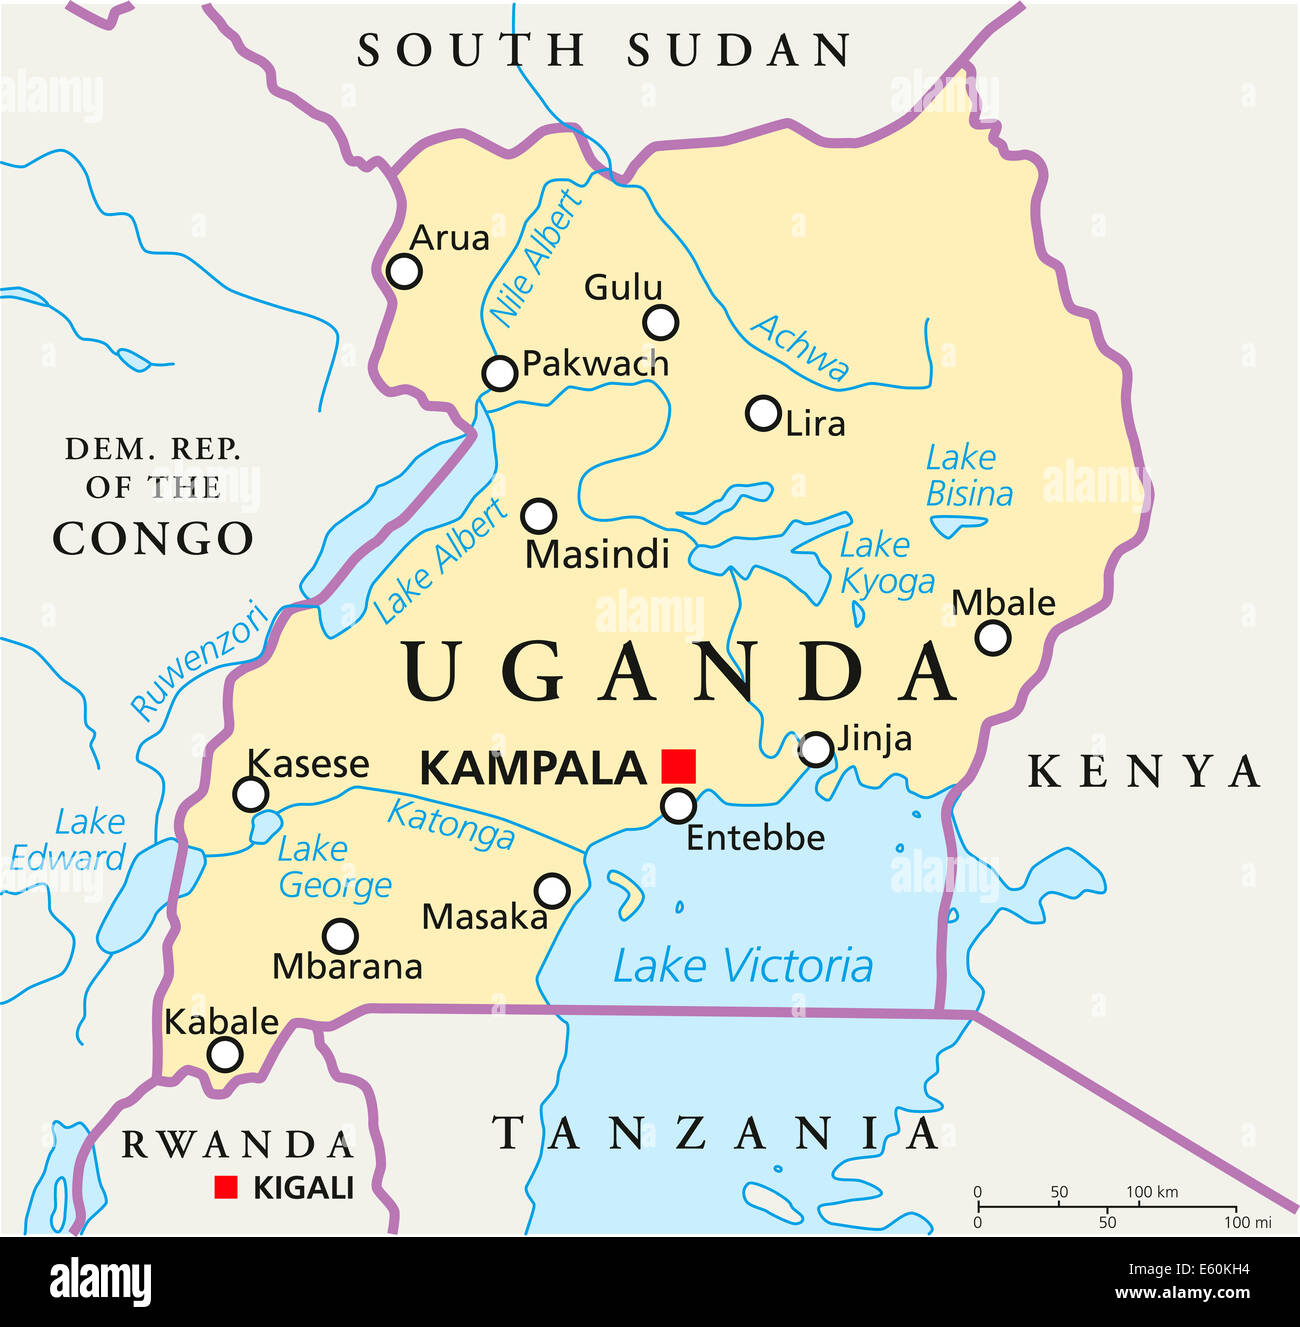 Kampala Uganda Map Uganda Political Map Stock Photo: 72544784   Alamy